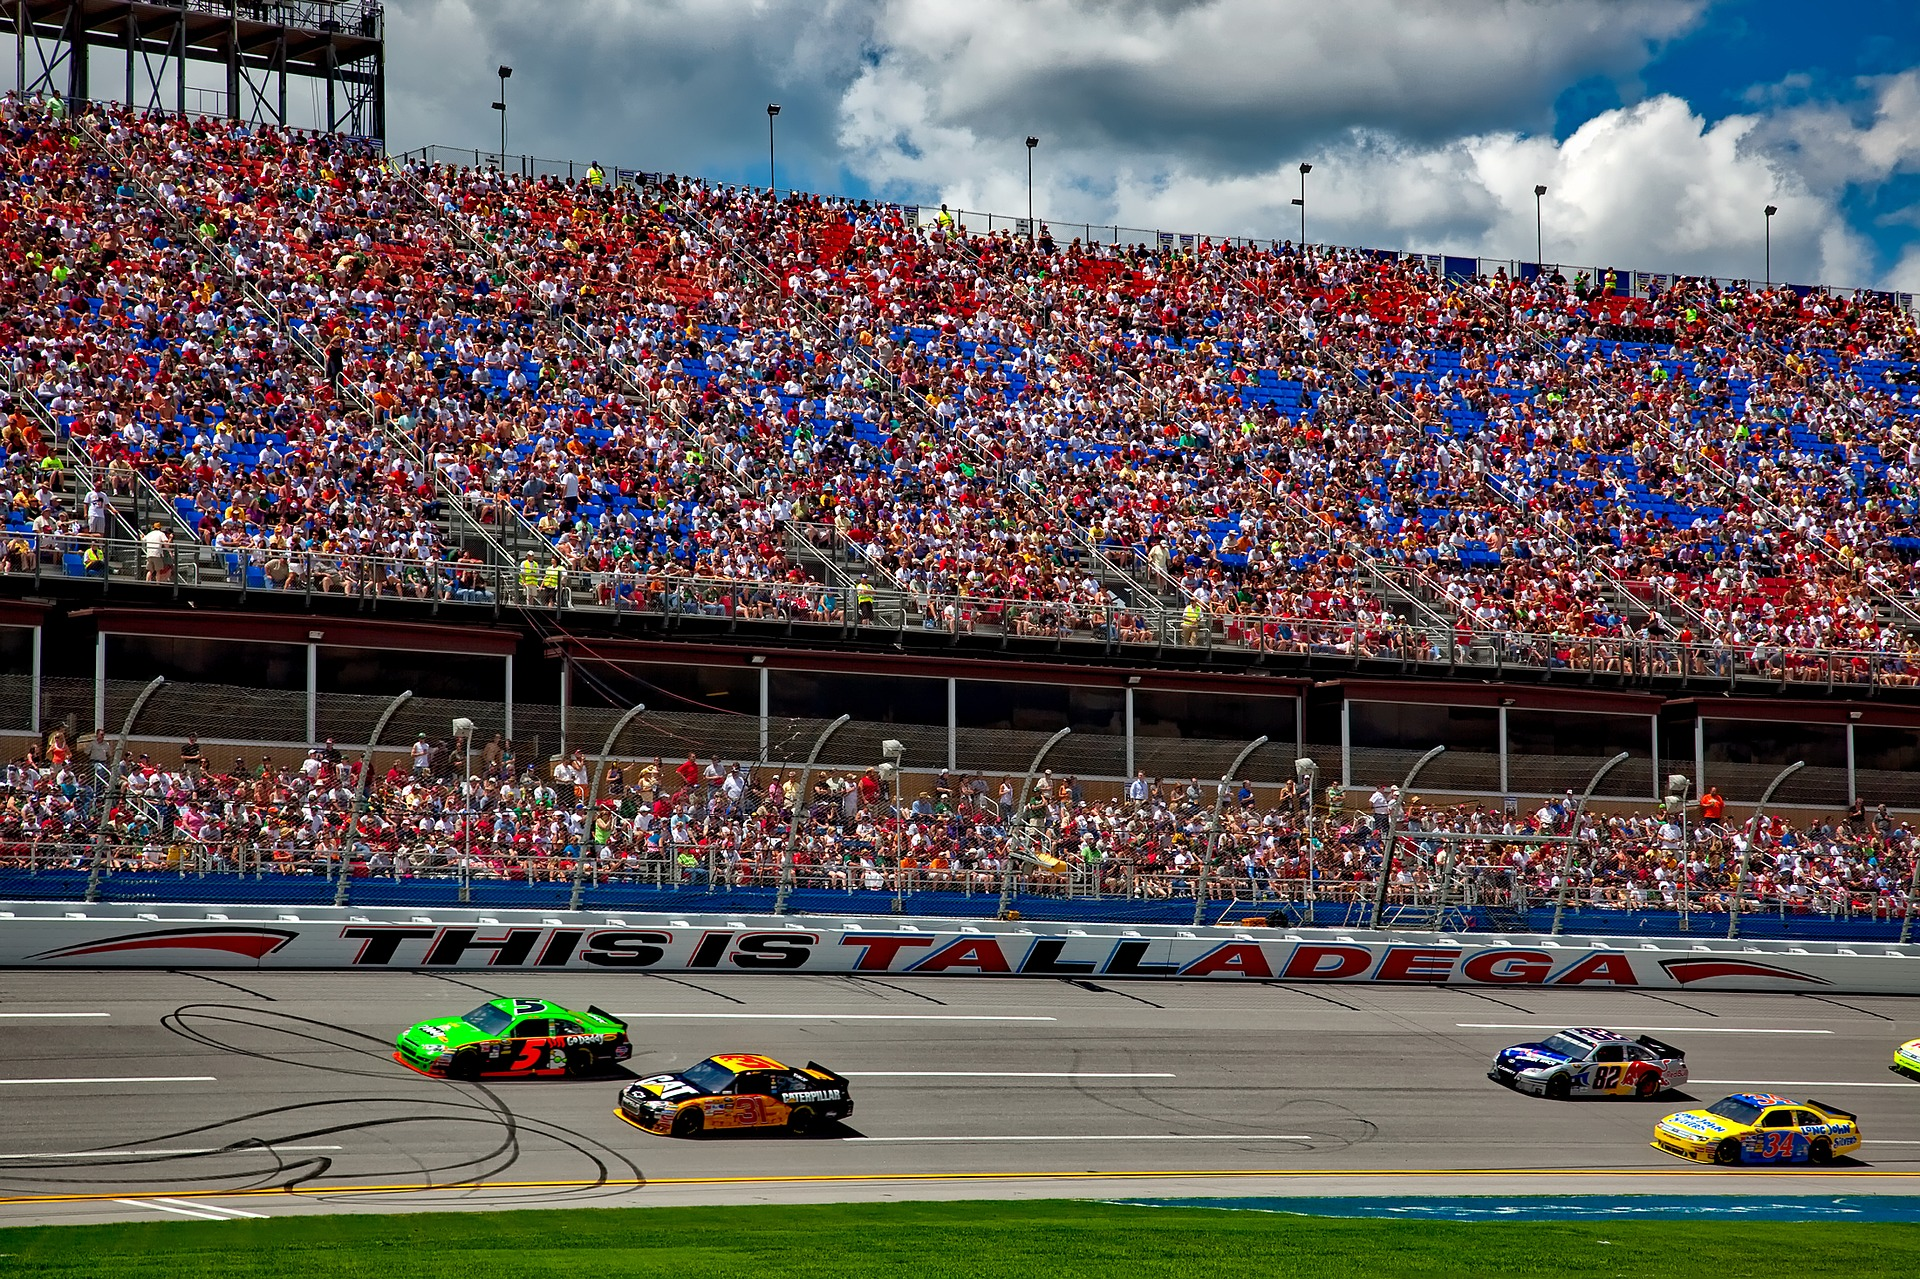 Colorful stock cars race around a track.